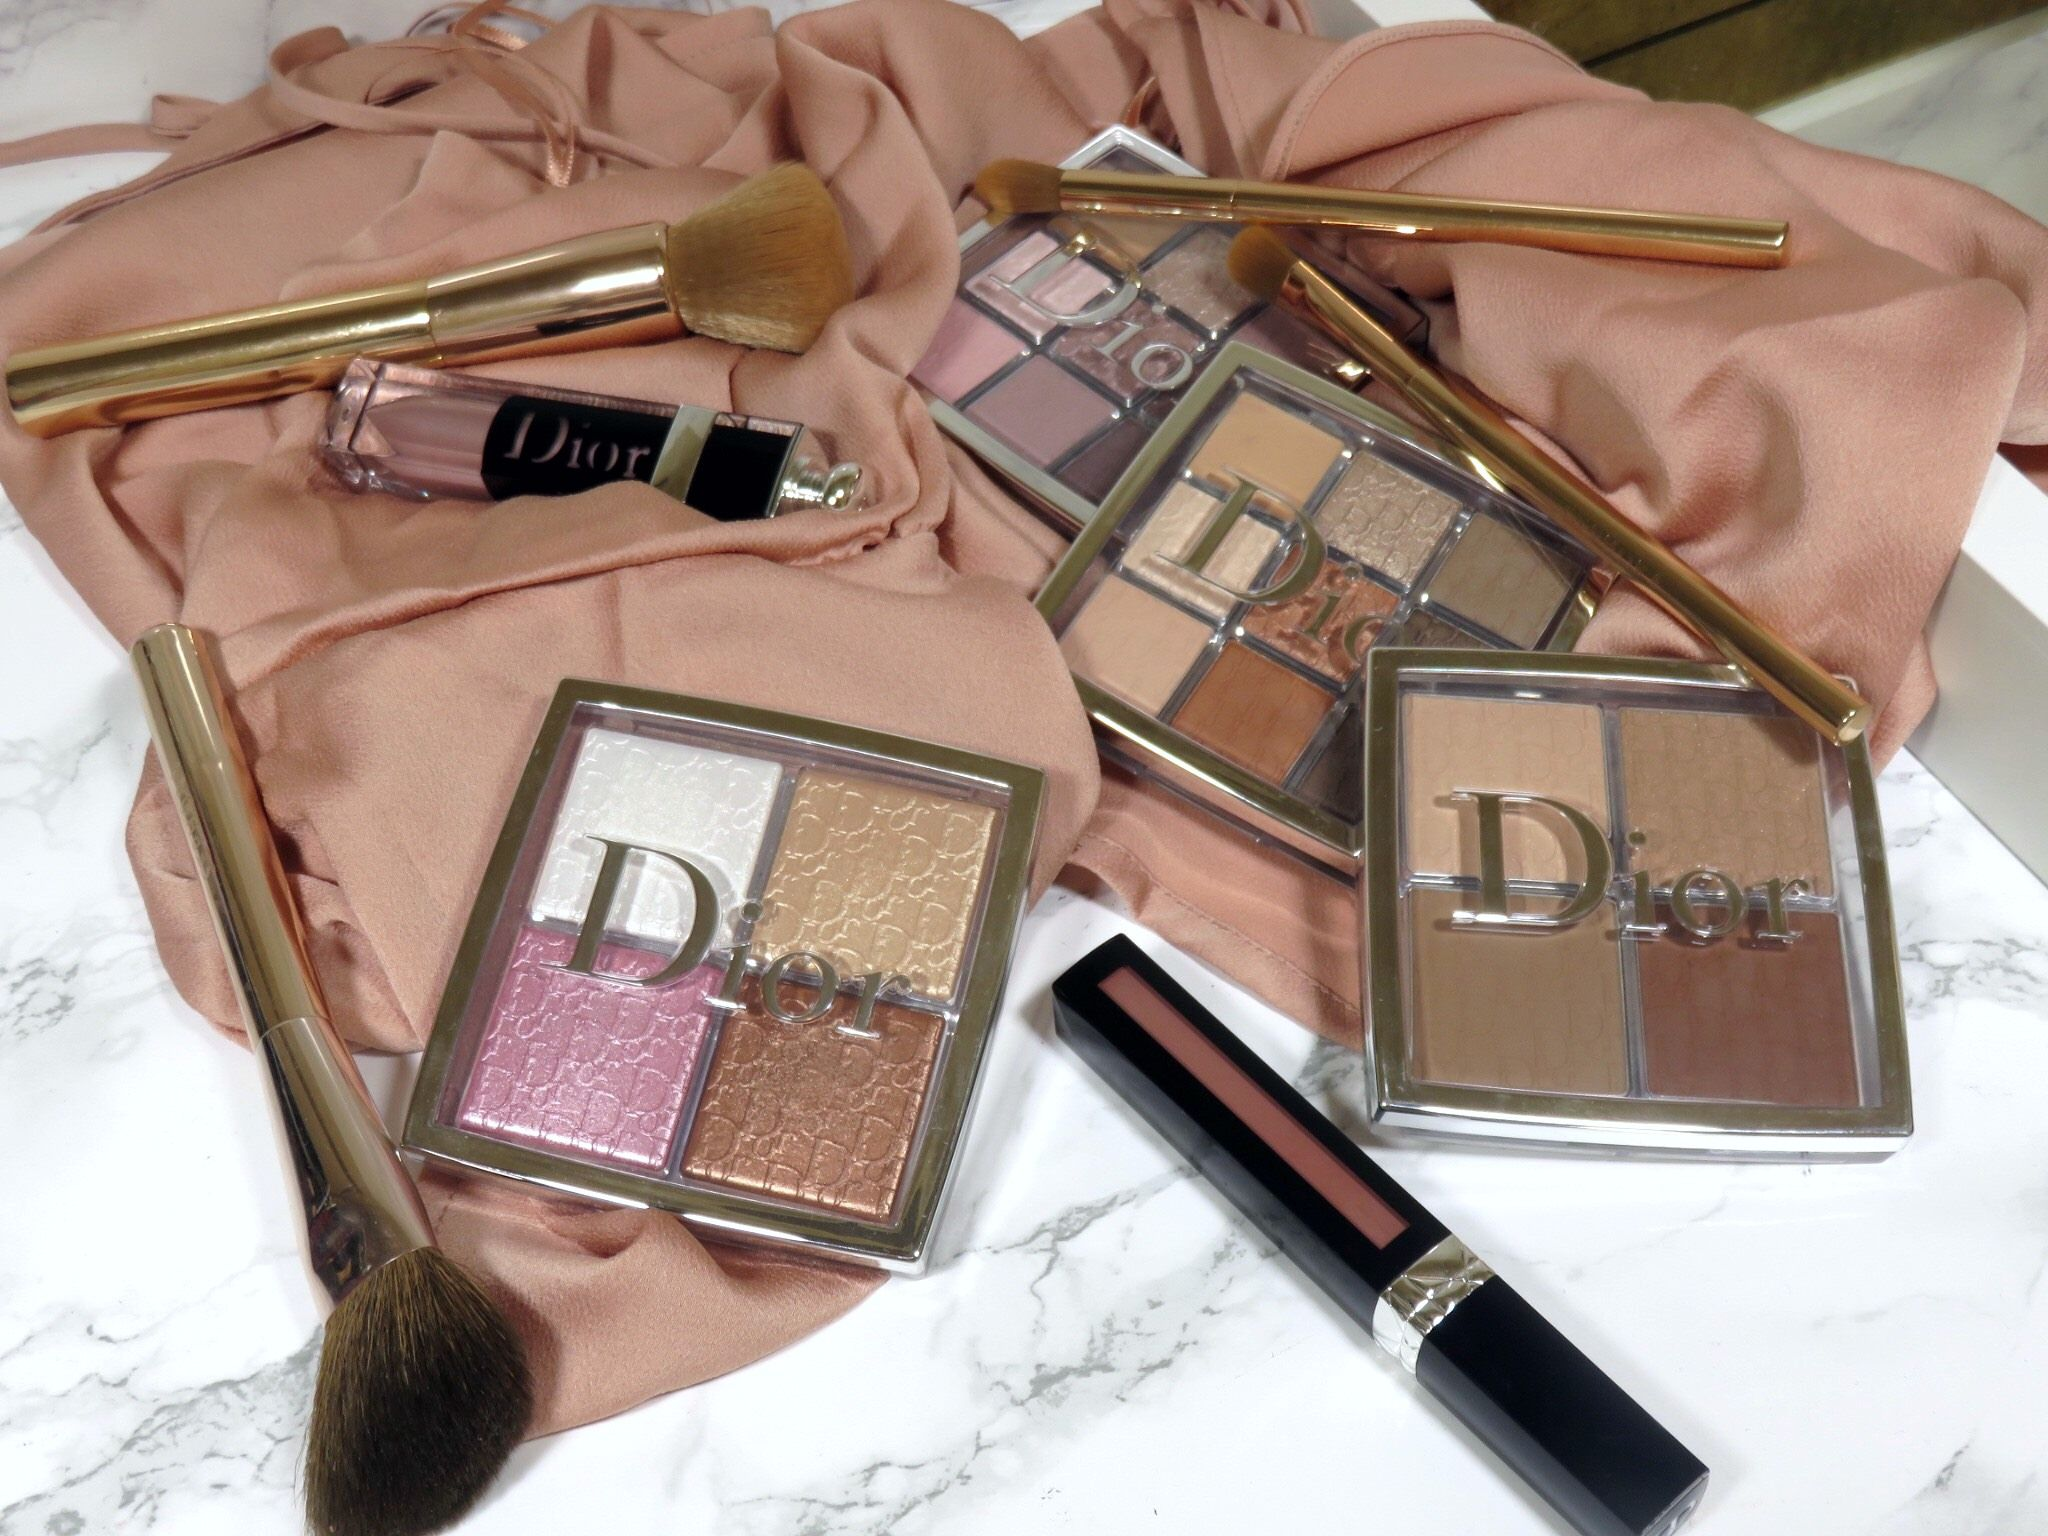   Review   Dior Backstage Collection Glow Face Palette ...